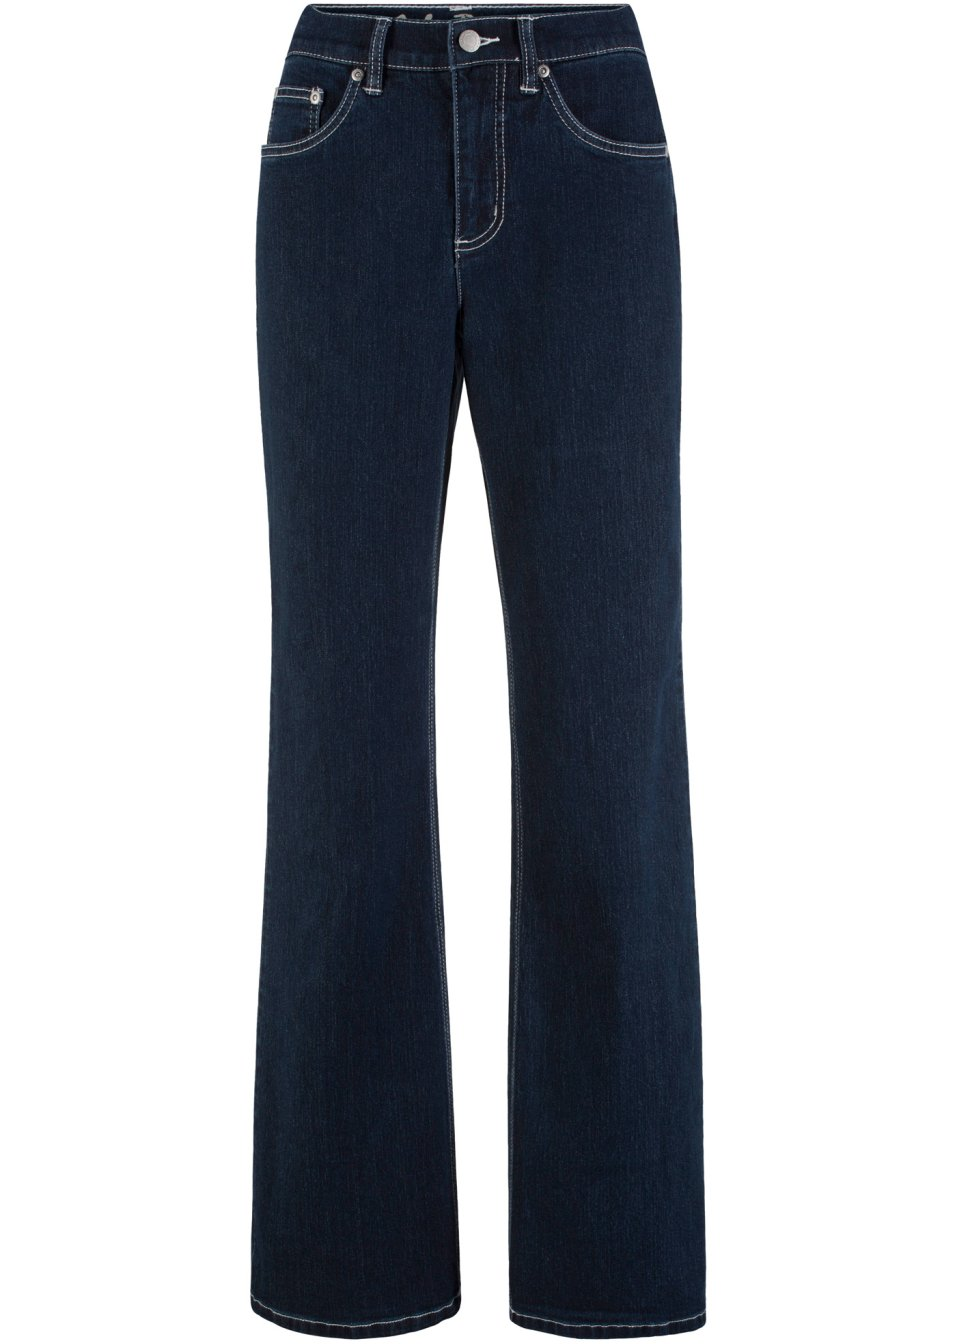 Basic-Komfort-Stretch-Jeans mit hoher Taille - dunkelblau Normal Jj5rb VquEE